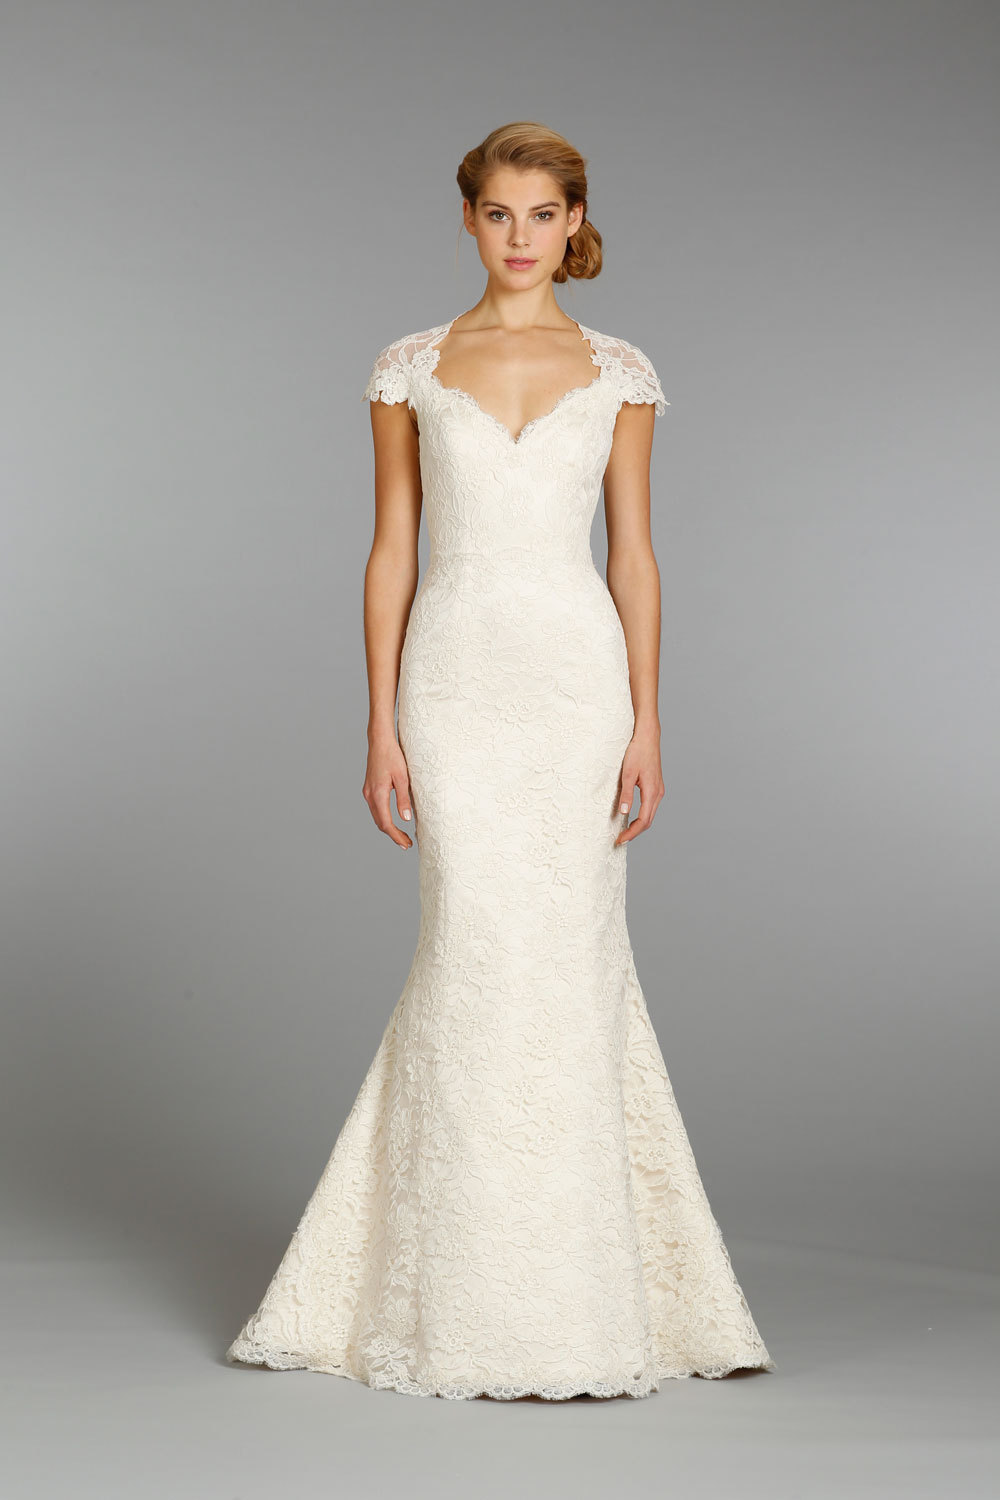 Alvina-valenta-wedding-dress-fall-2013-bridal-9358.full